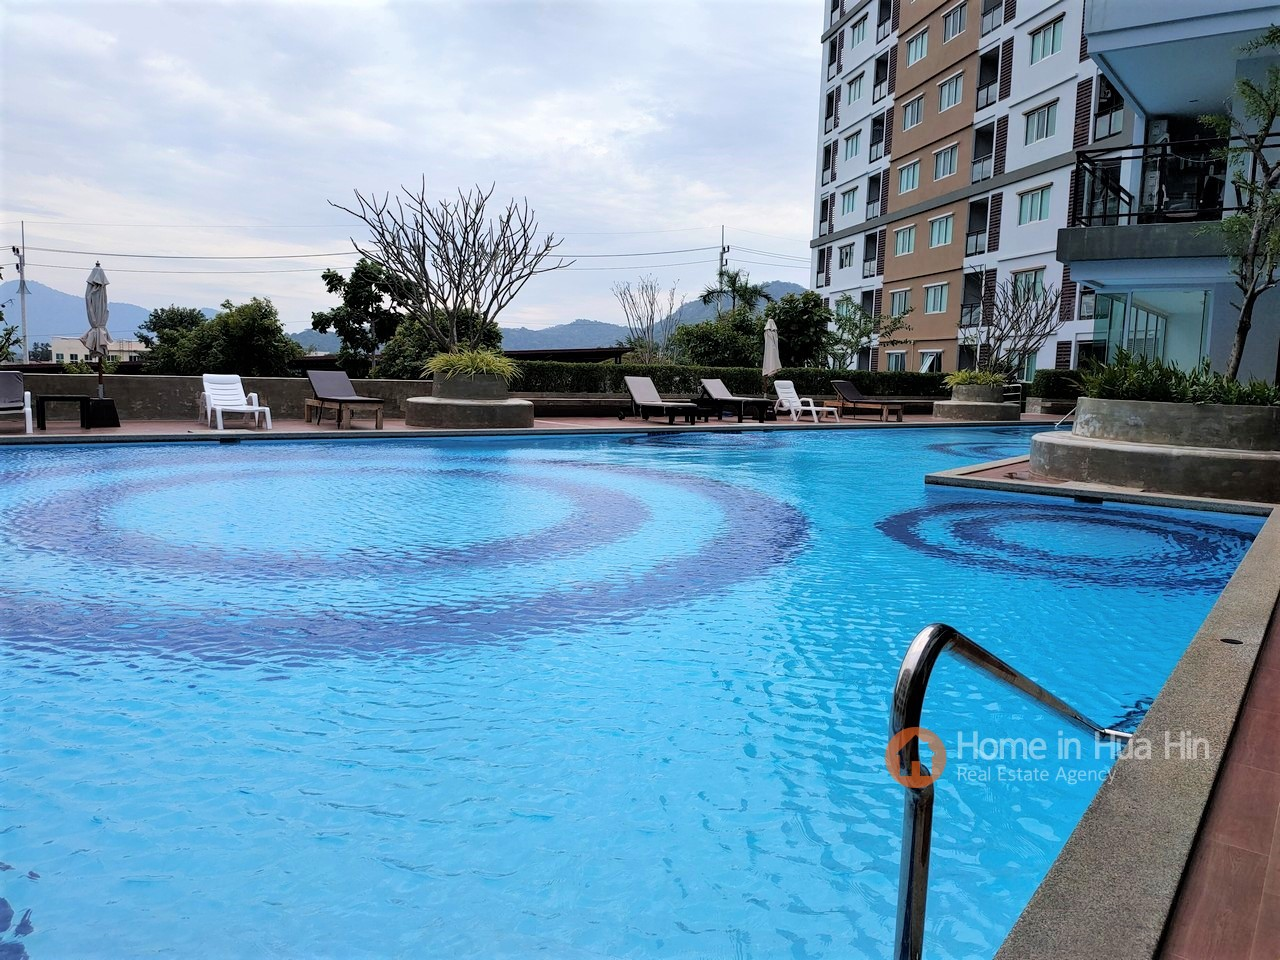 Hua Hin Condo Apartment in Hua Hin with Mountains View for SALE